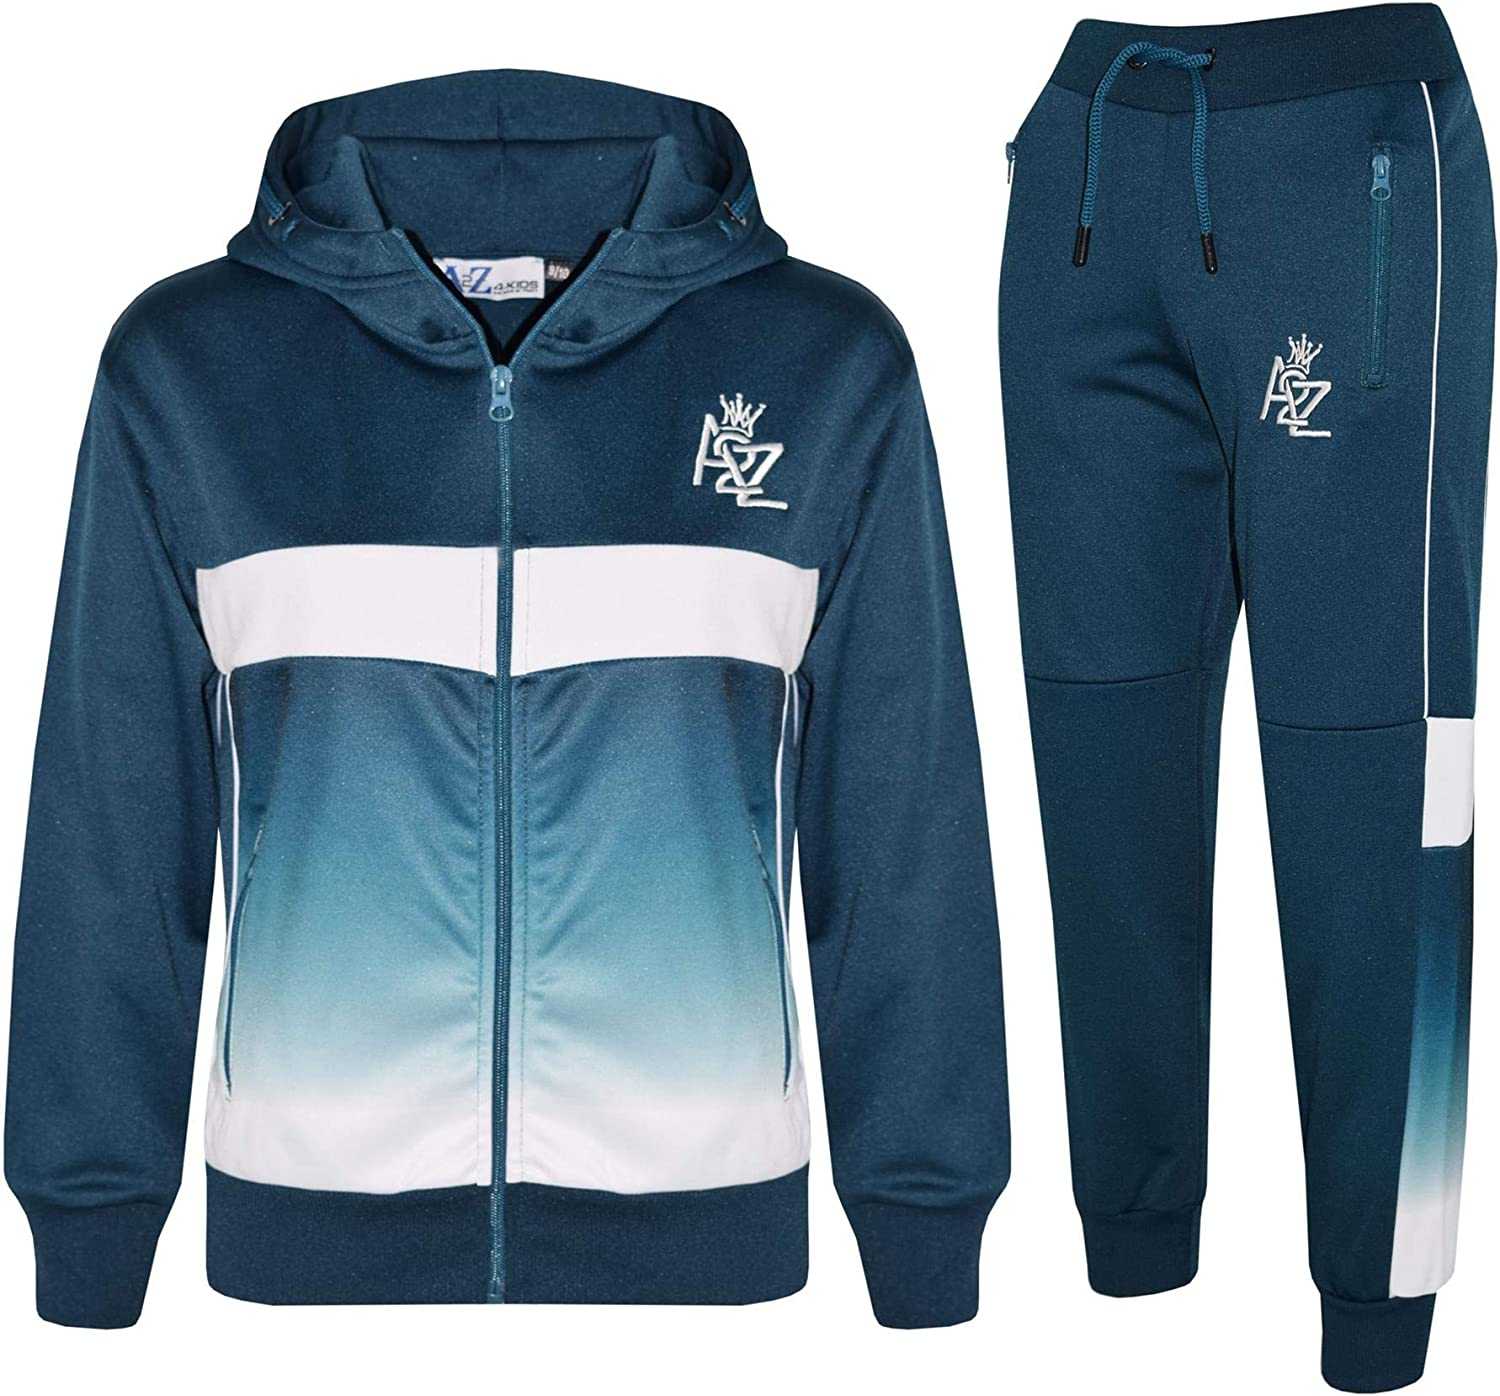 A2Z Kids Boys Girls Tracksuits Fade Gradient Teal Hooded Top Bottom Jogging Suit 71HO9P0PY5L